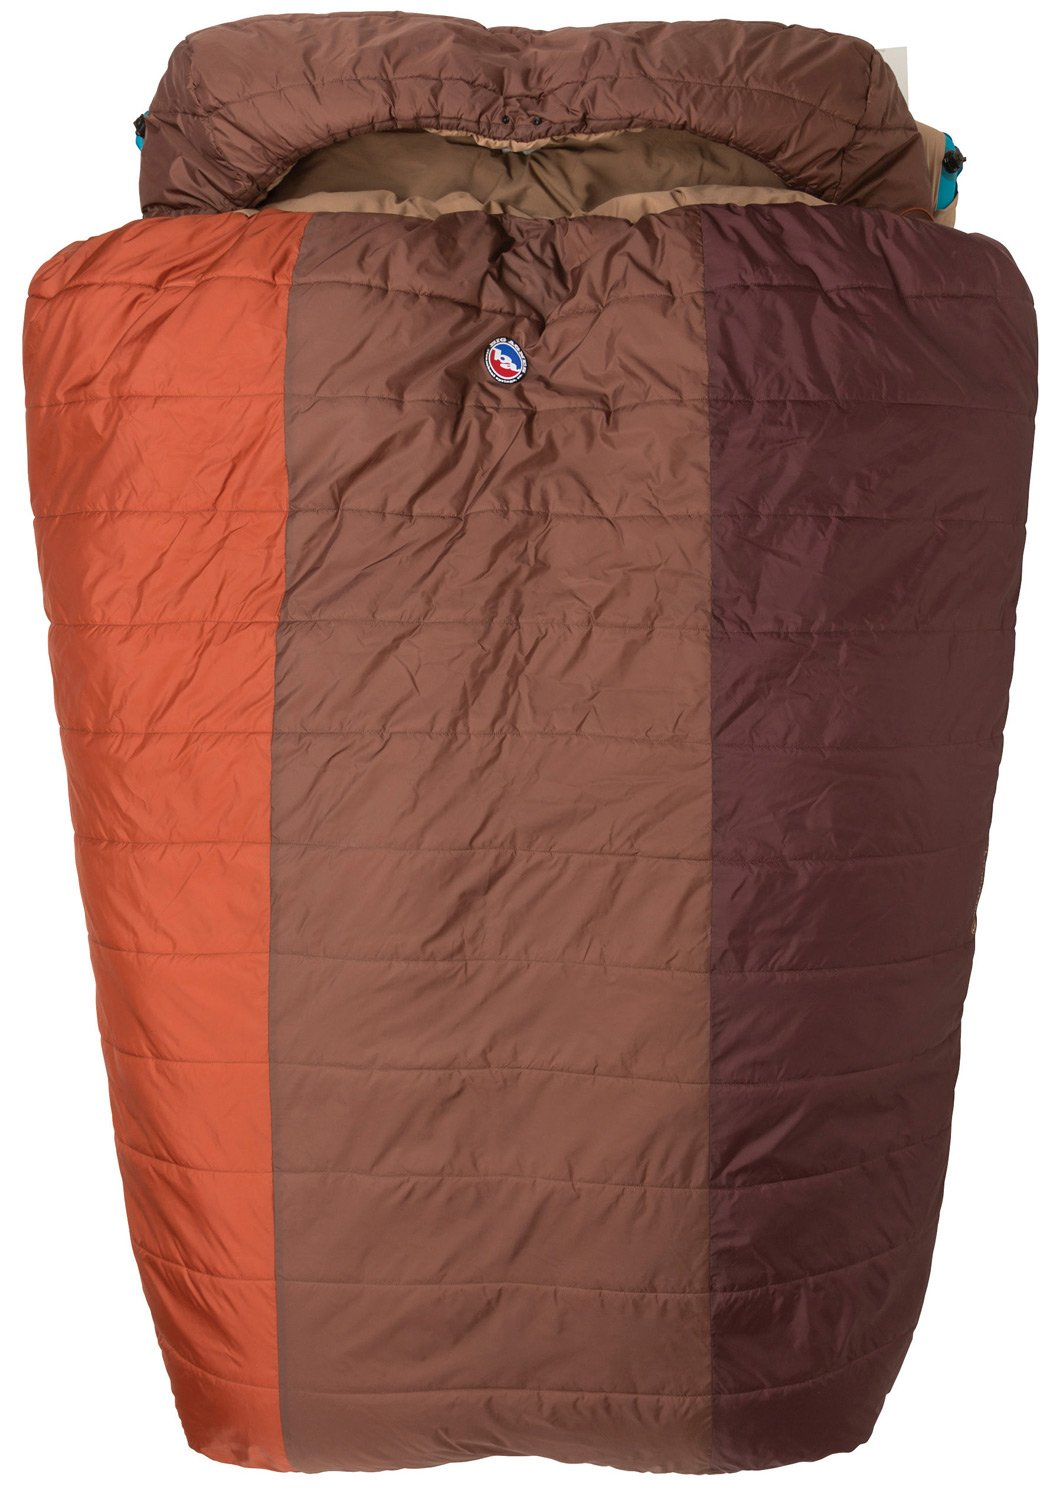 An image related to Big Agnes Dream Island 15 Men's 10 Degree Nylon Sleeping Bag